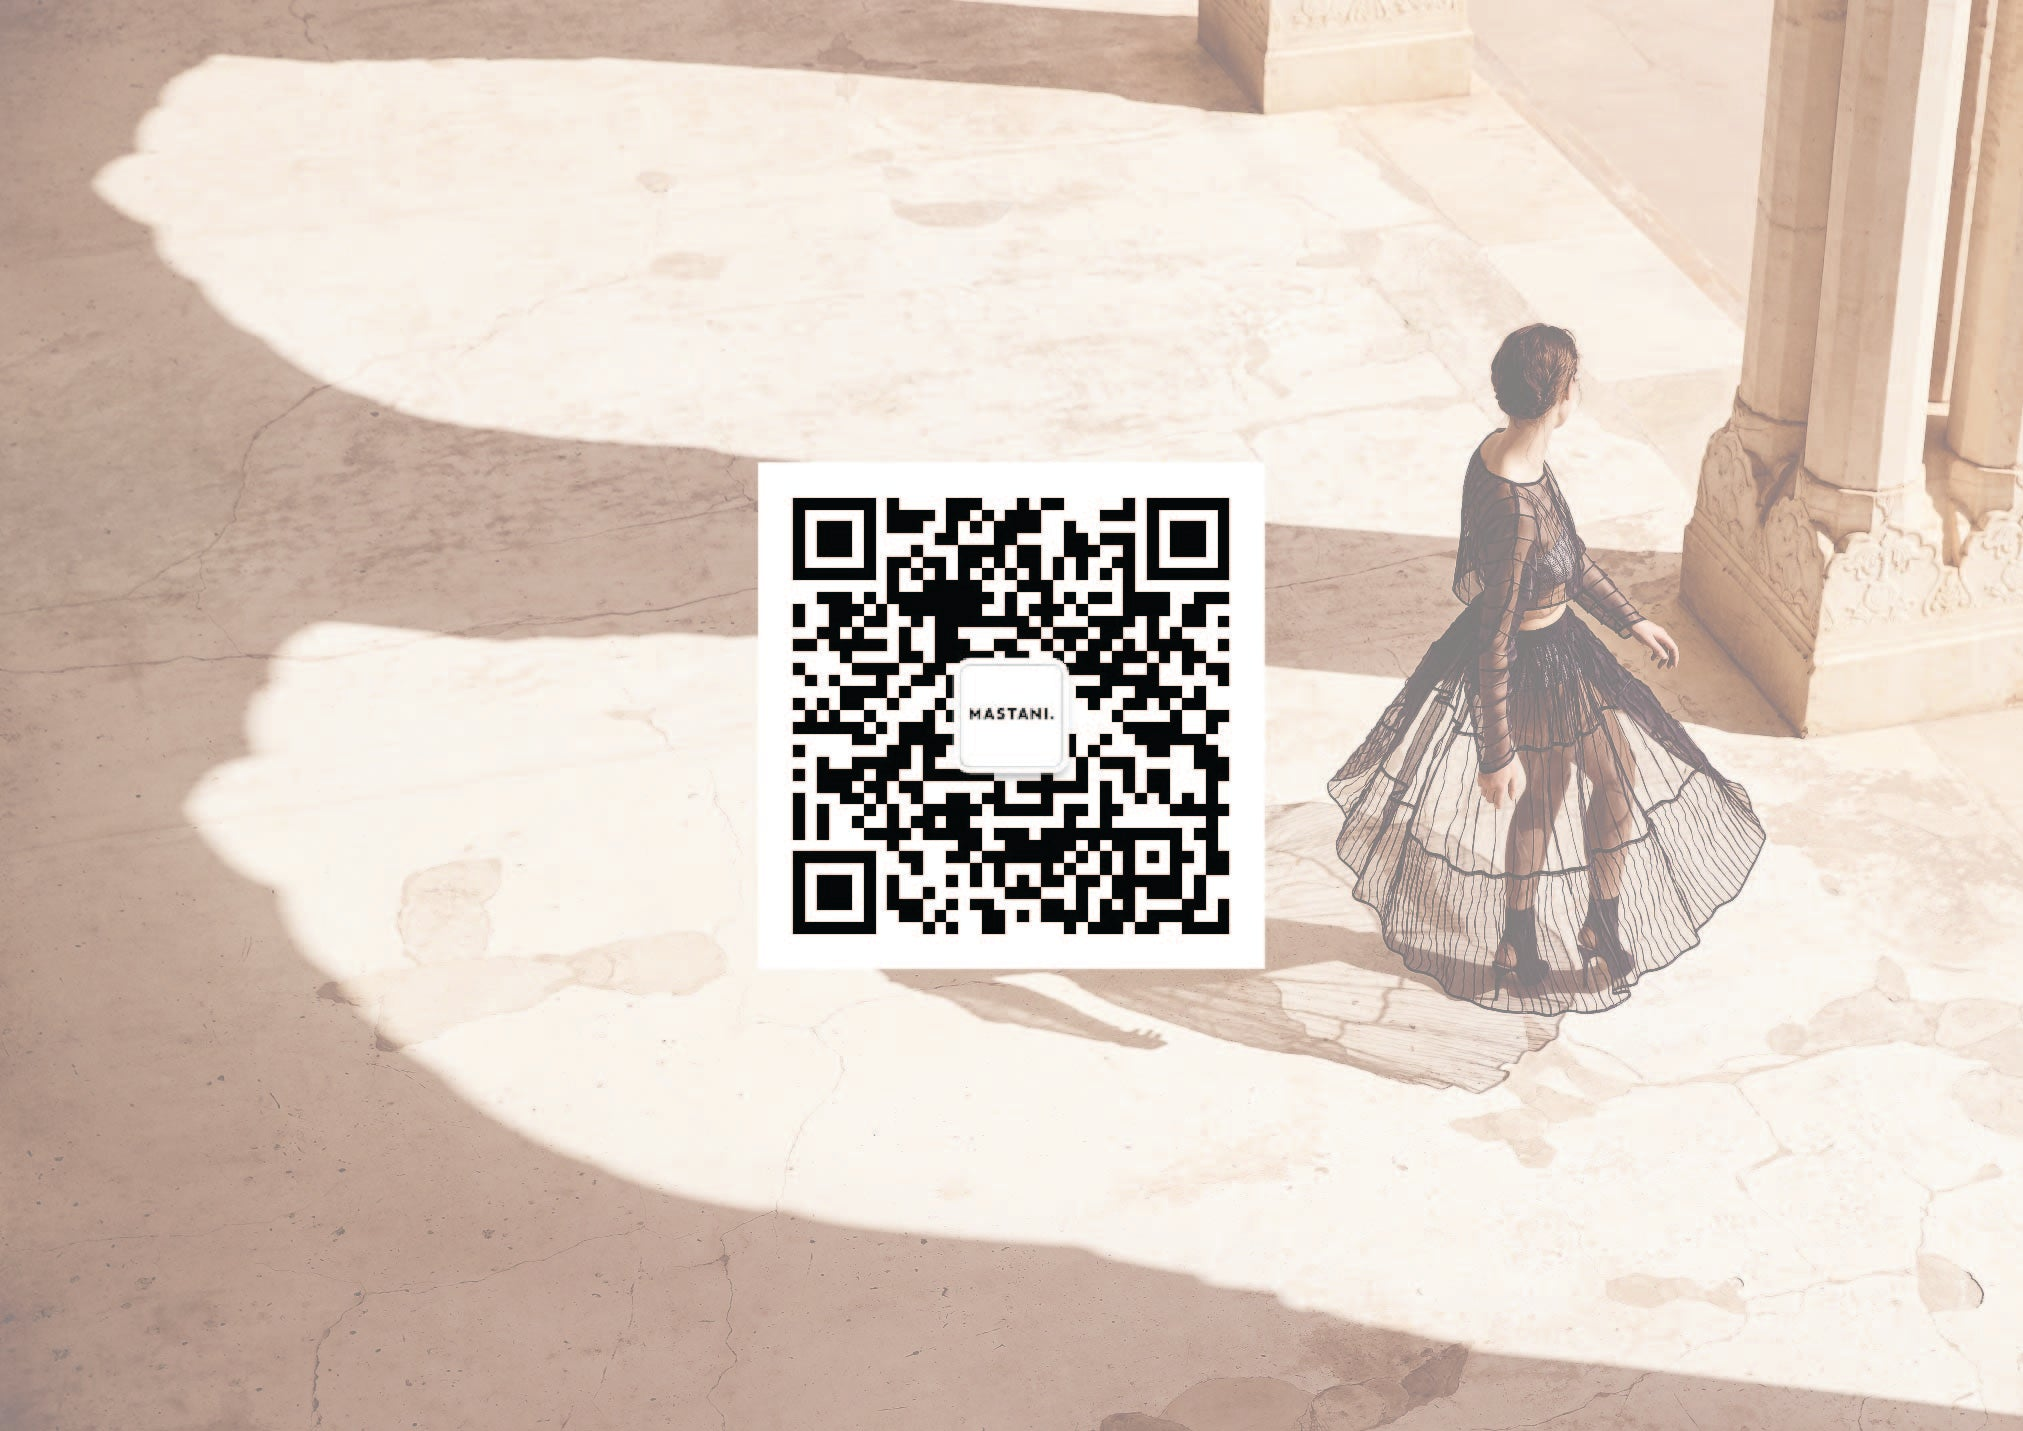 SCAN QR CODE TO FOLLOW MASTANI ON WECHAT